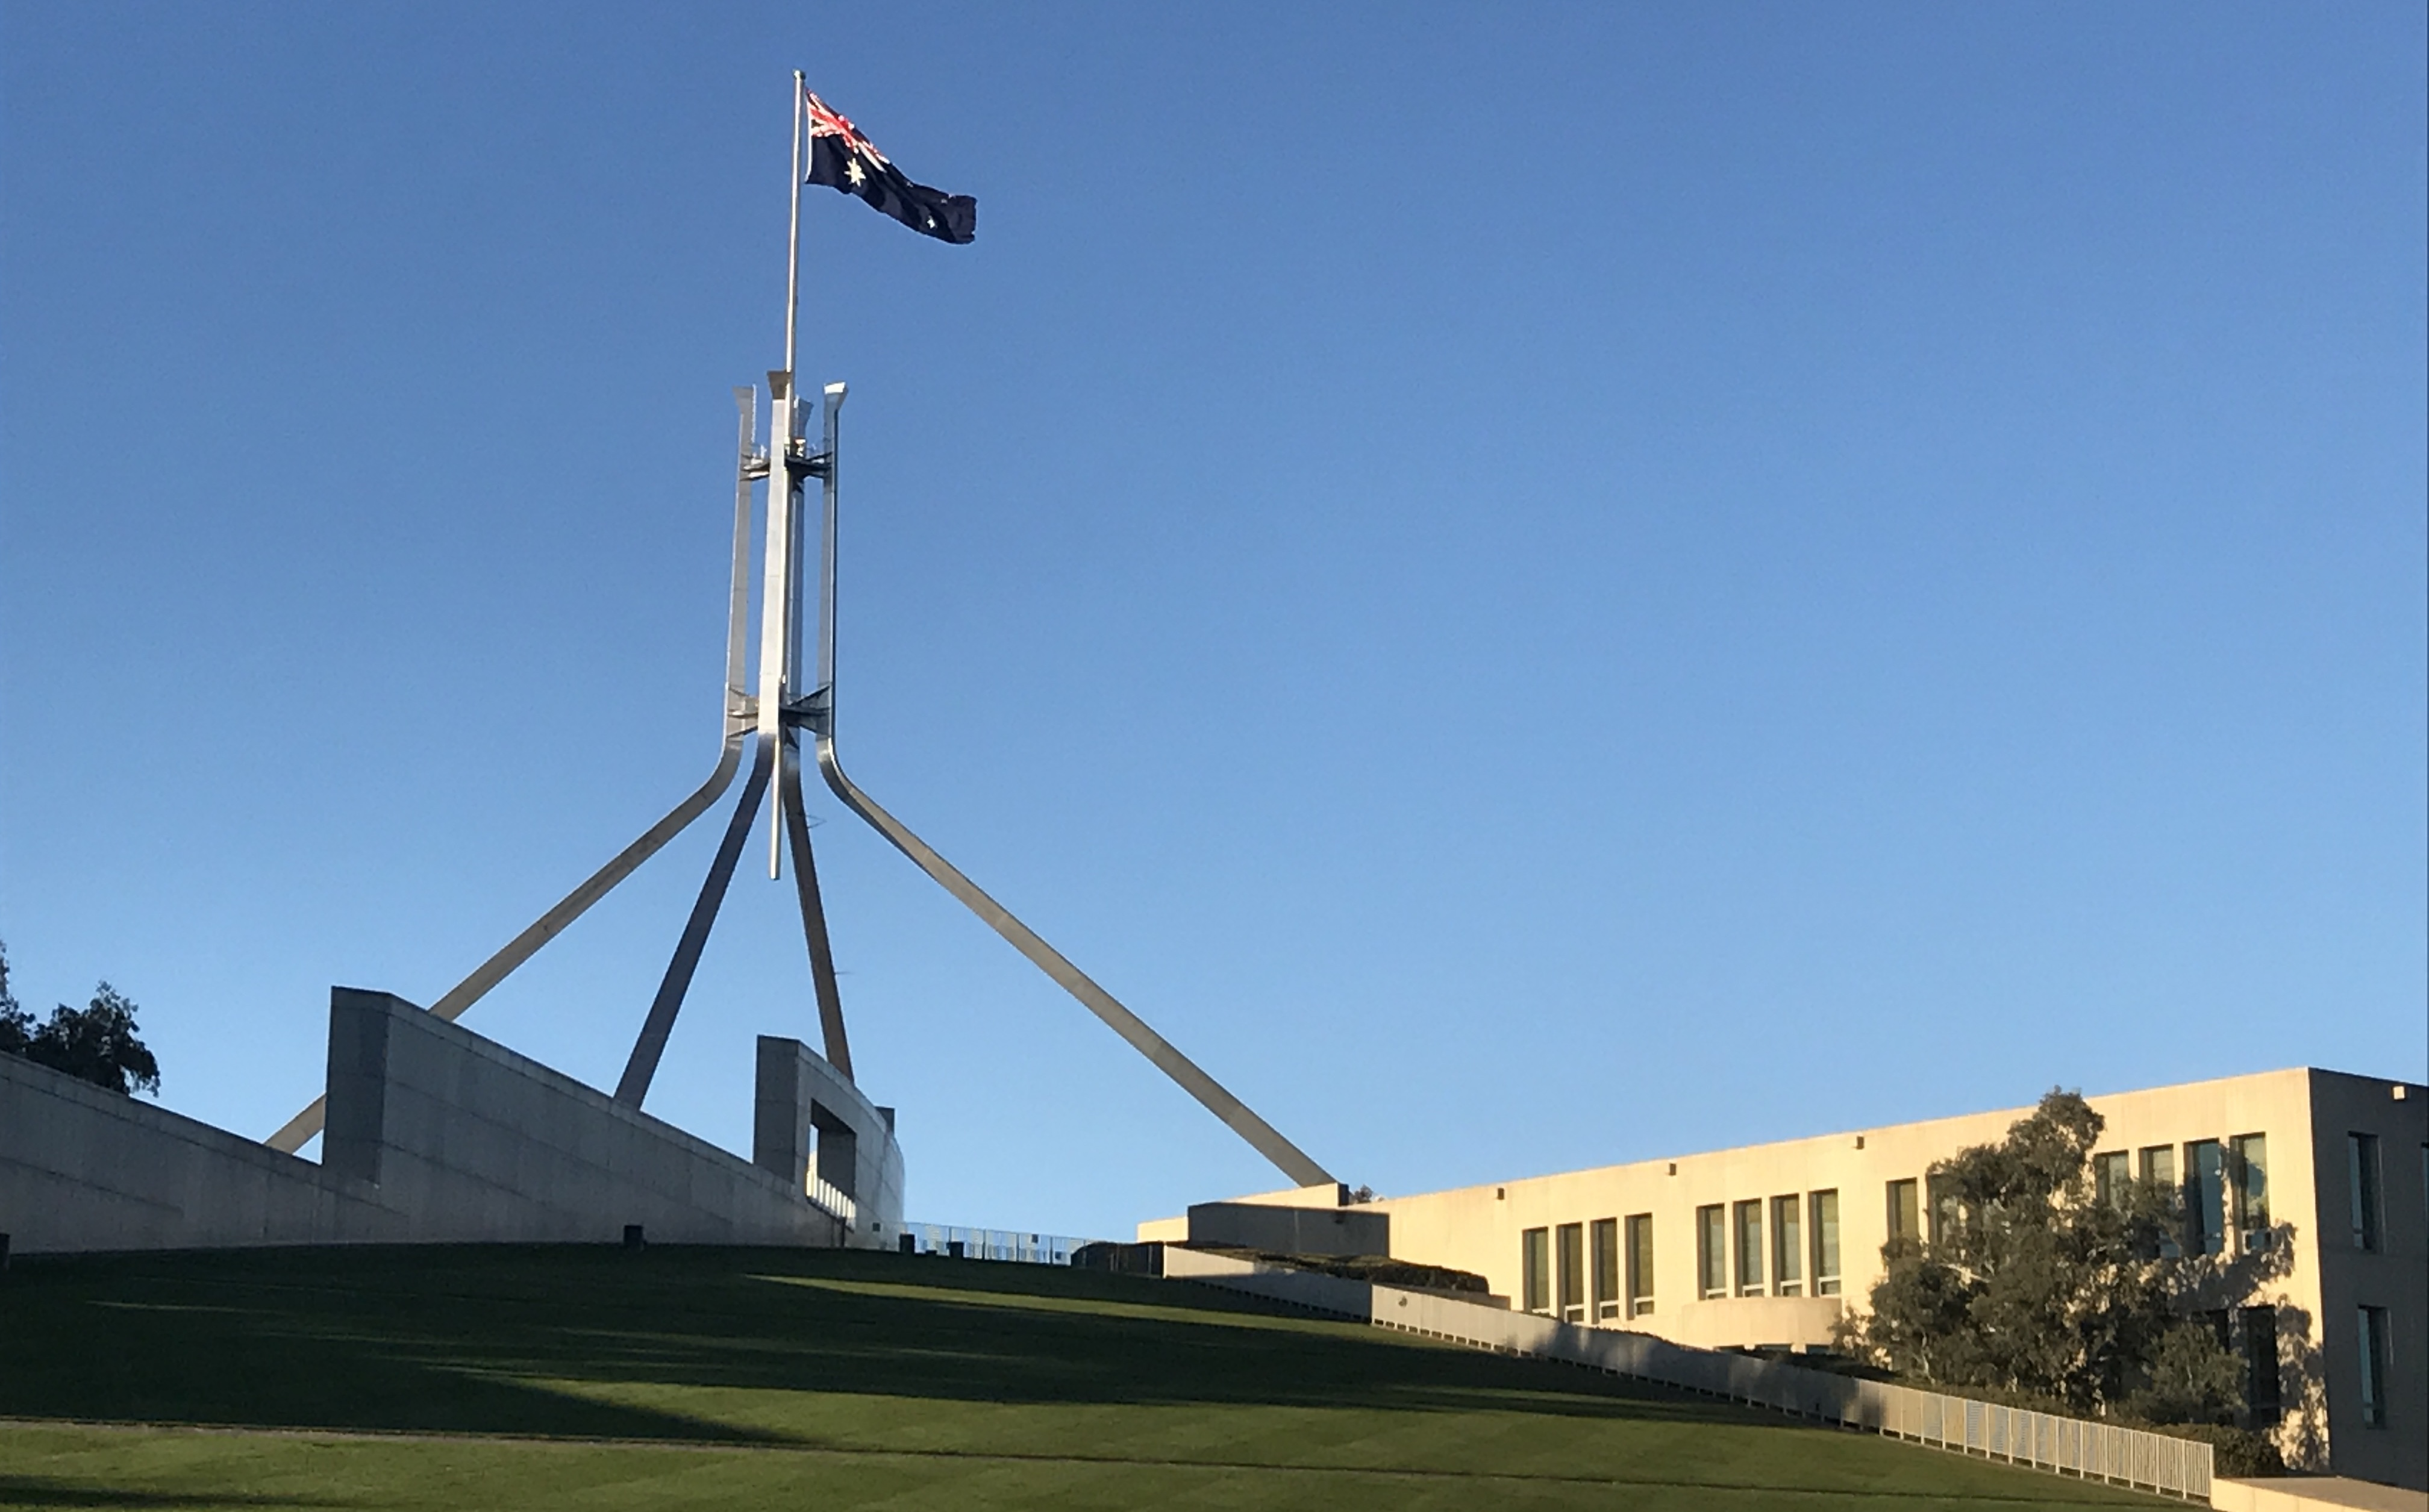 Australia Moves to Ban Export of Recovered Materials and Build Domestic Rerocessing Capacity